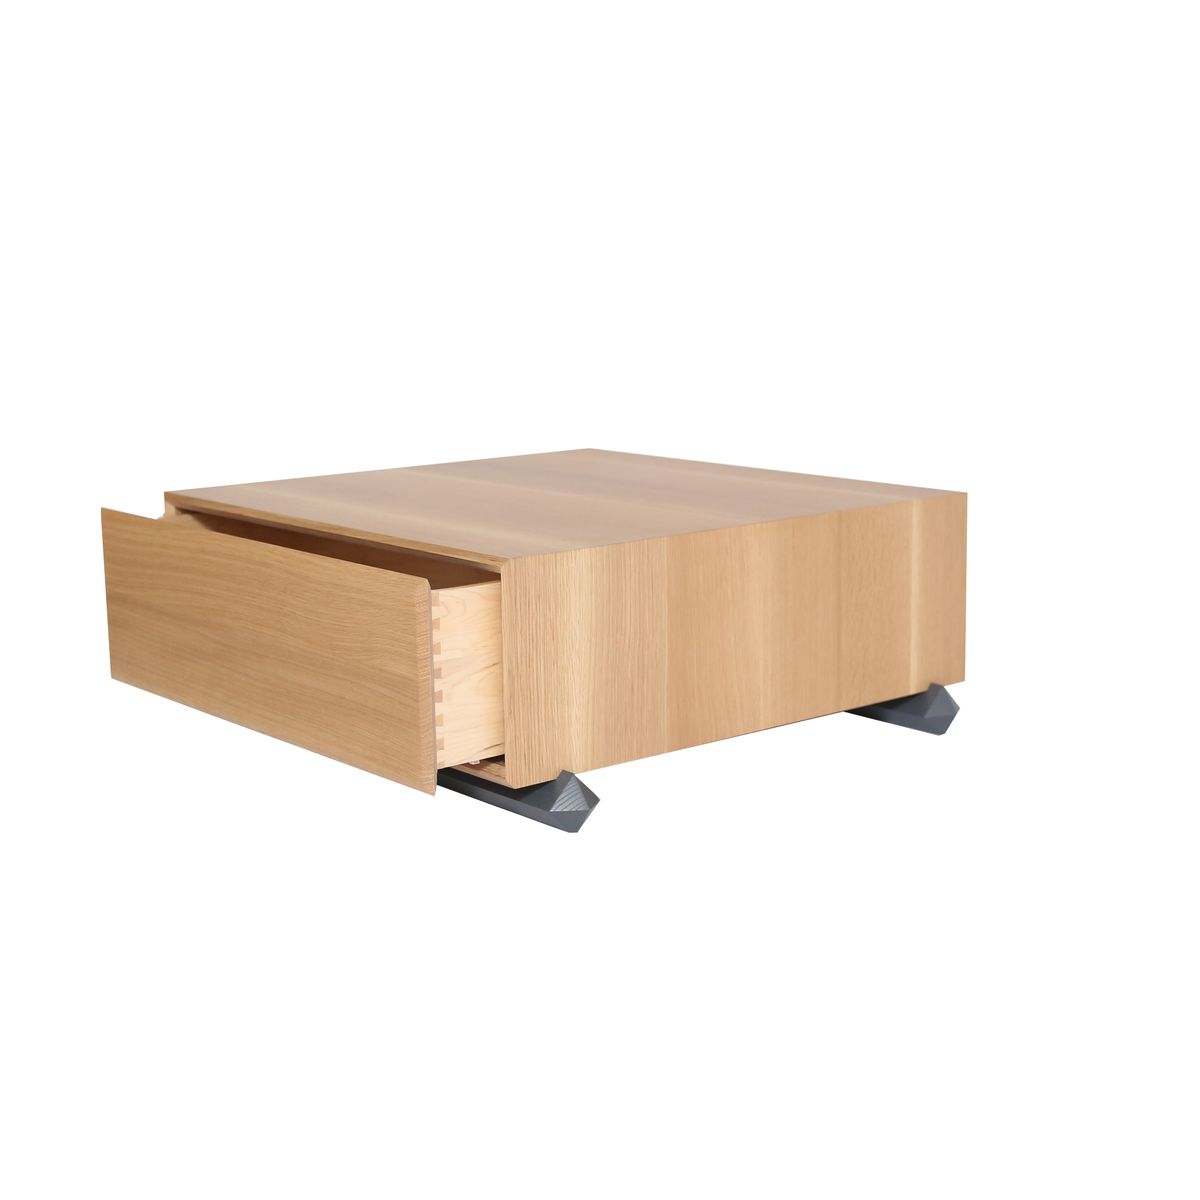 Stack Storage Wood Coffee Table With Drawers From Debra Folz Design For Sale At Pamono